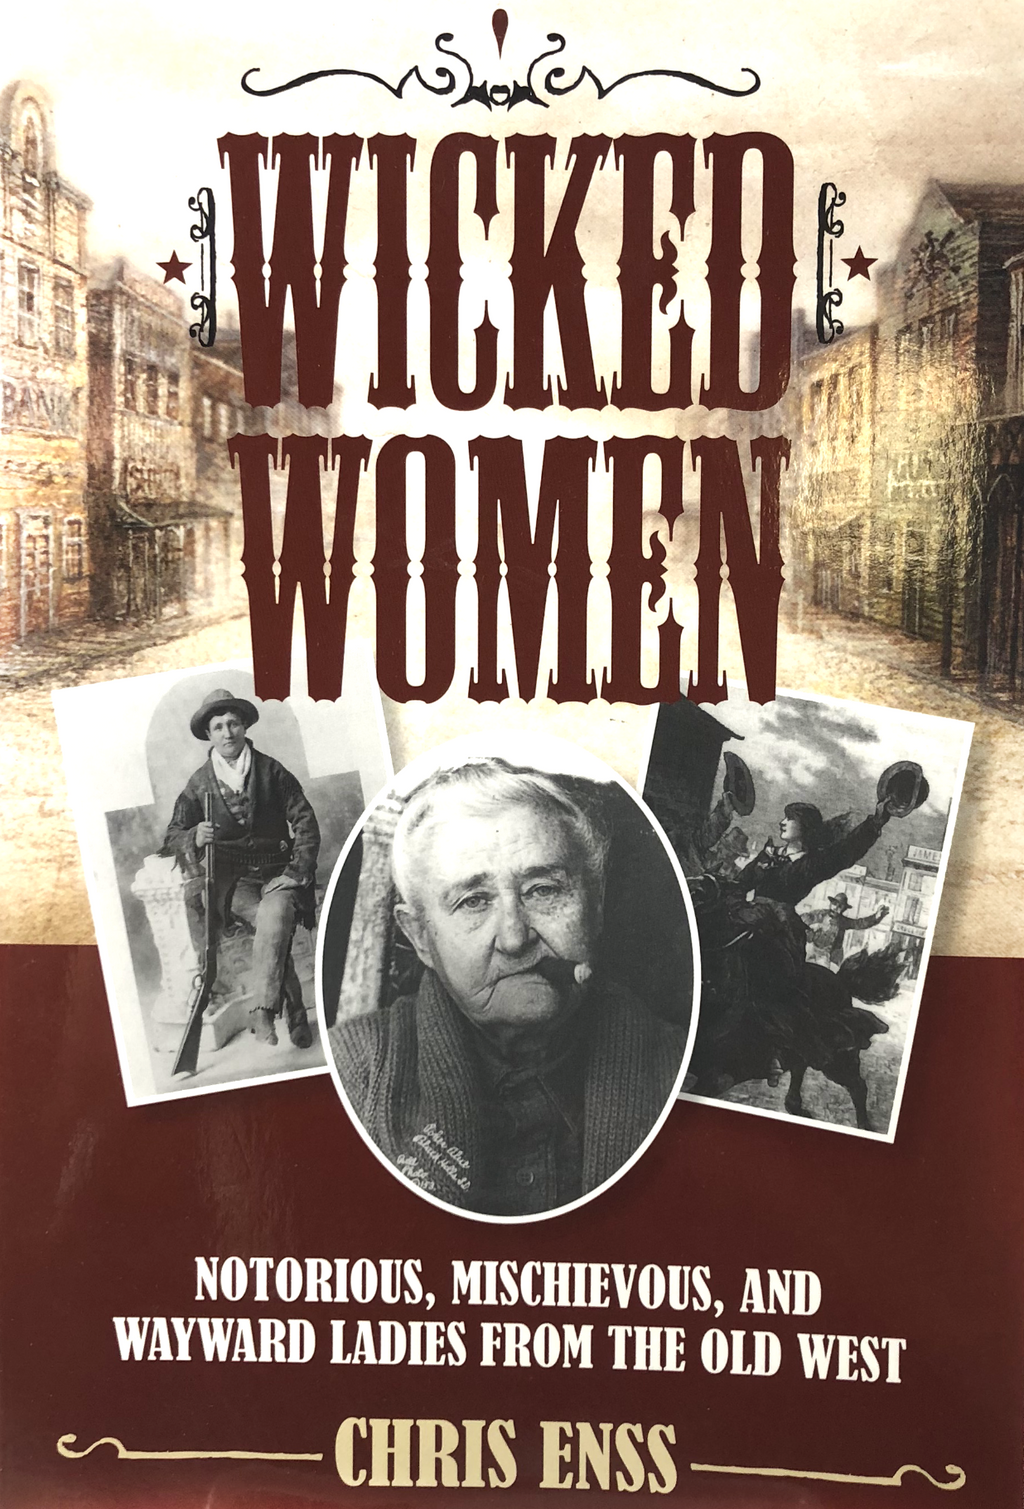 Wicked Women by Chris Enss